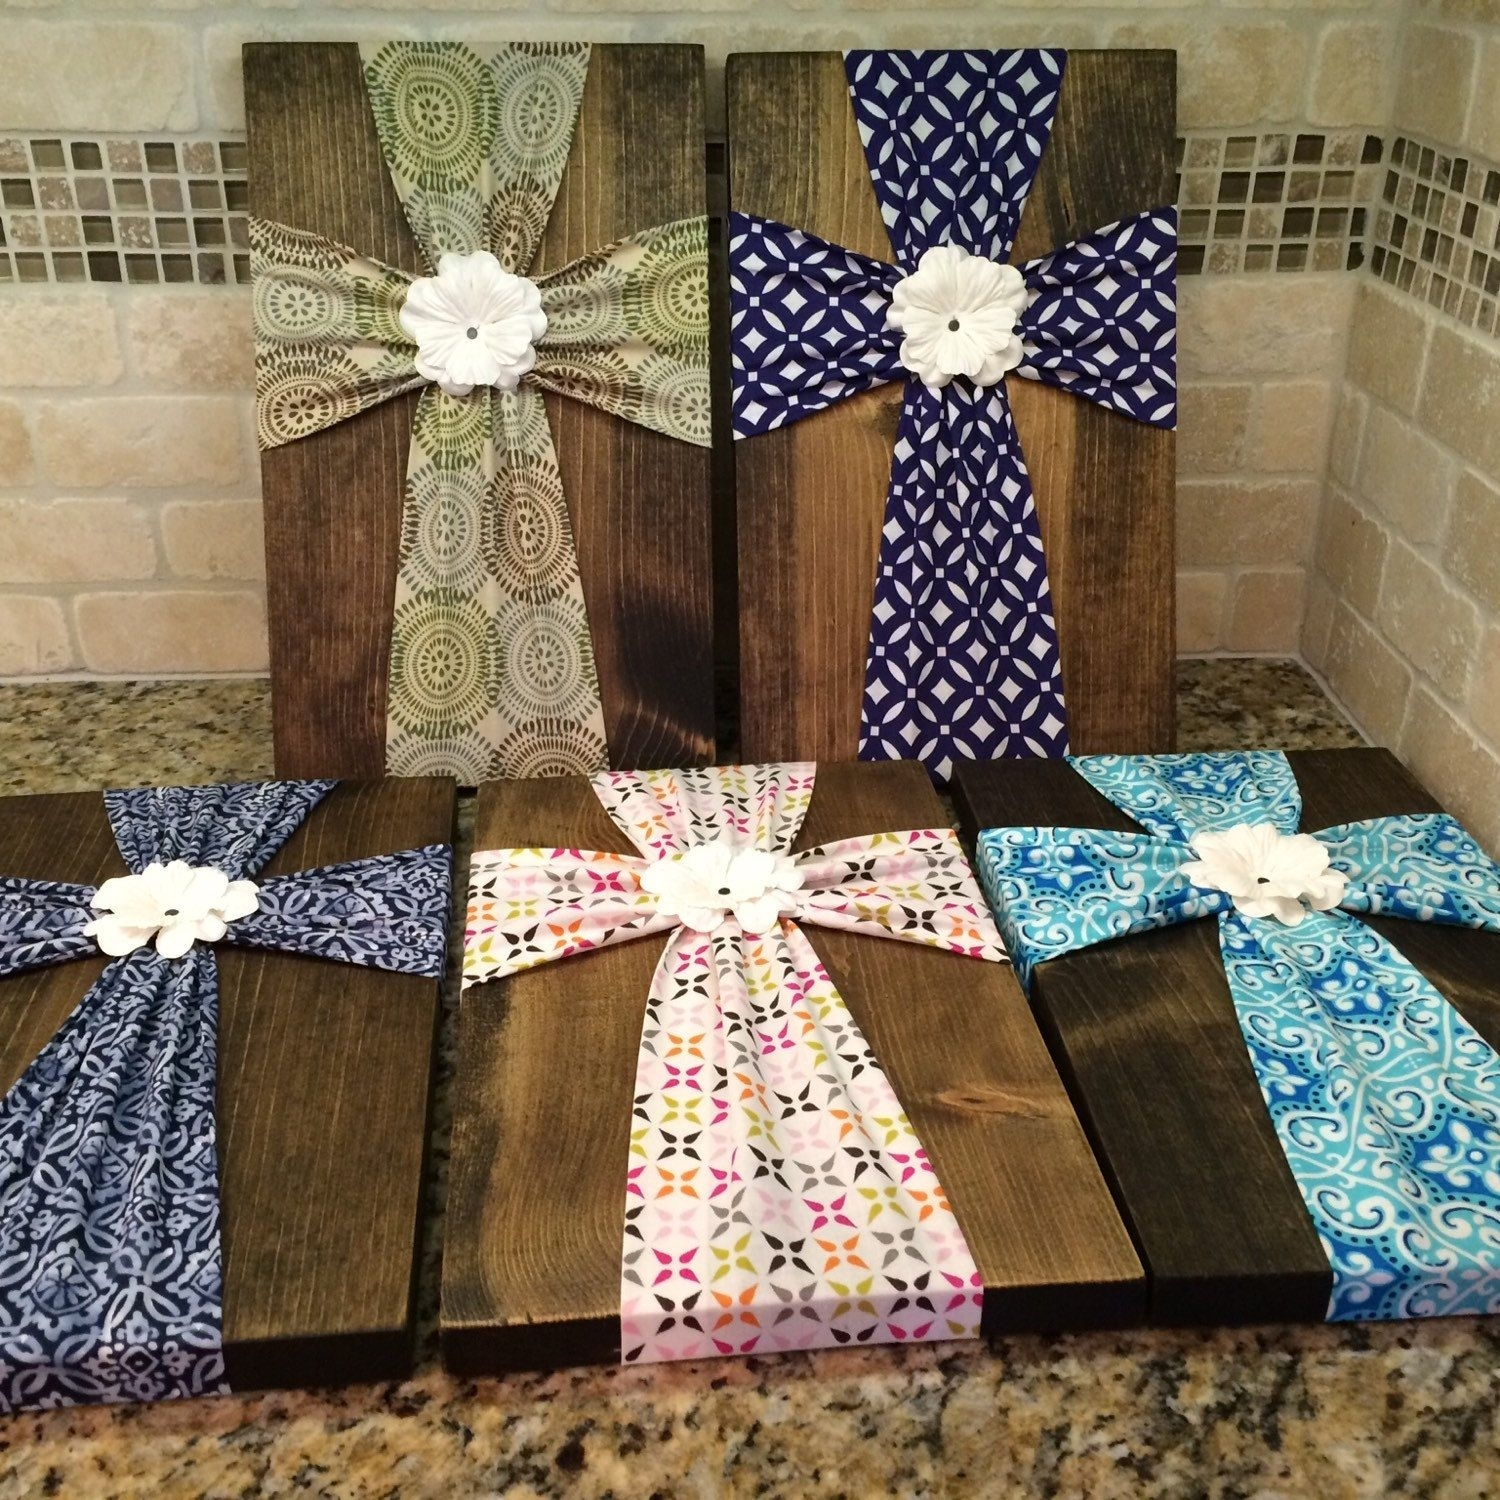 Wall Art – Fabric Cross On Wood Plaque With Flower Embellishment For Recent Diy Fabric Cross Wall Art (View 8 of 15)